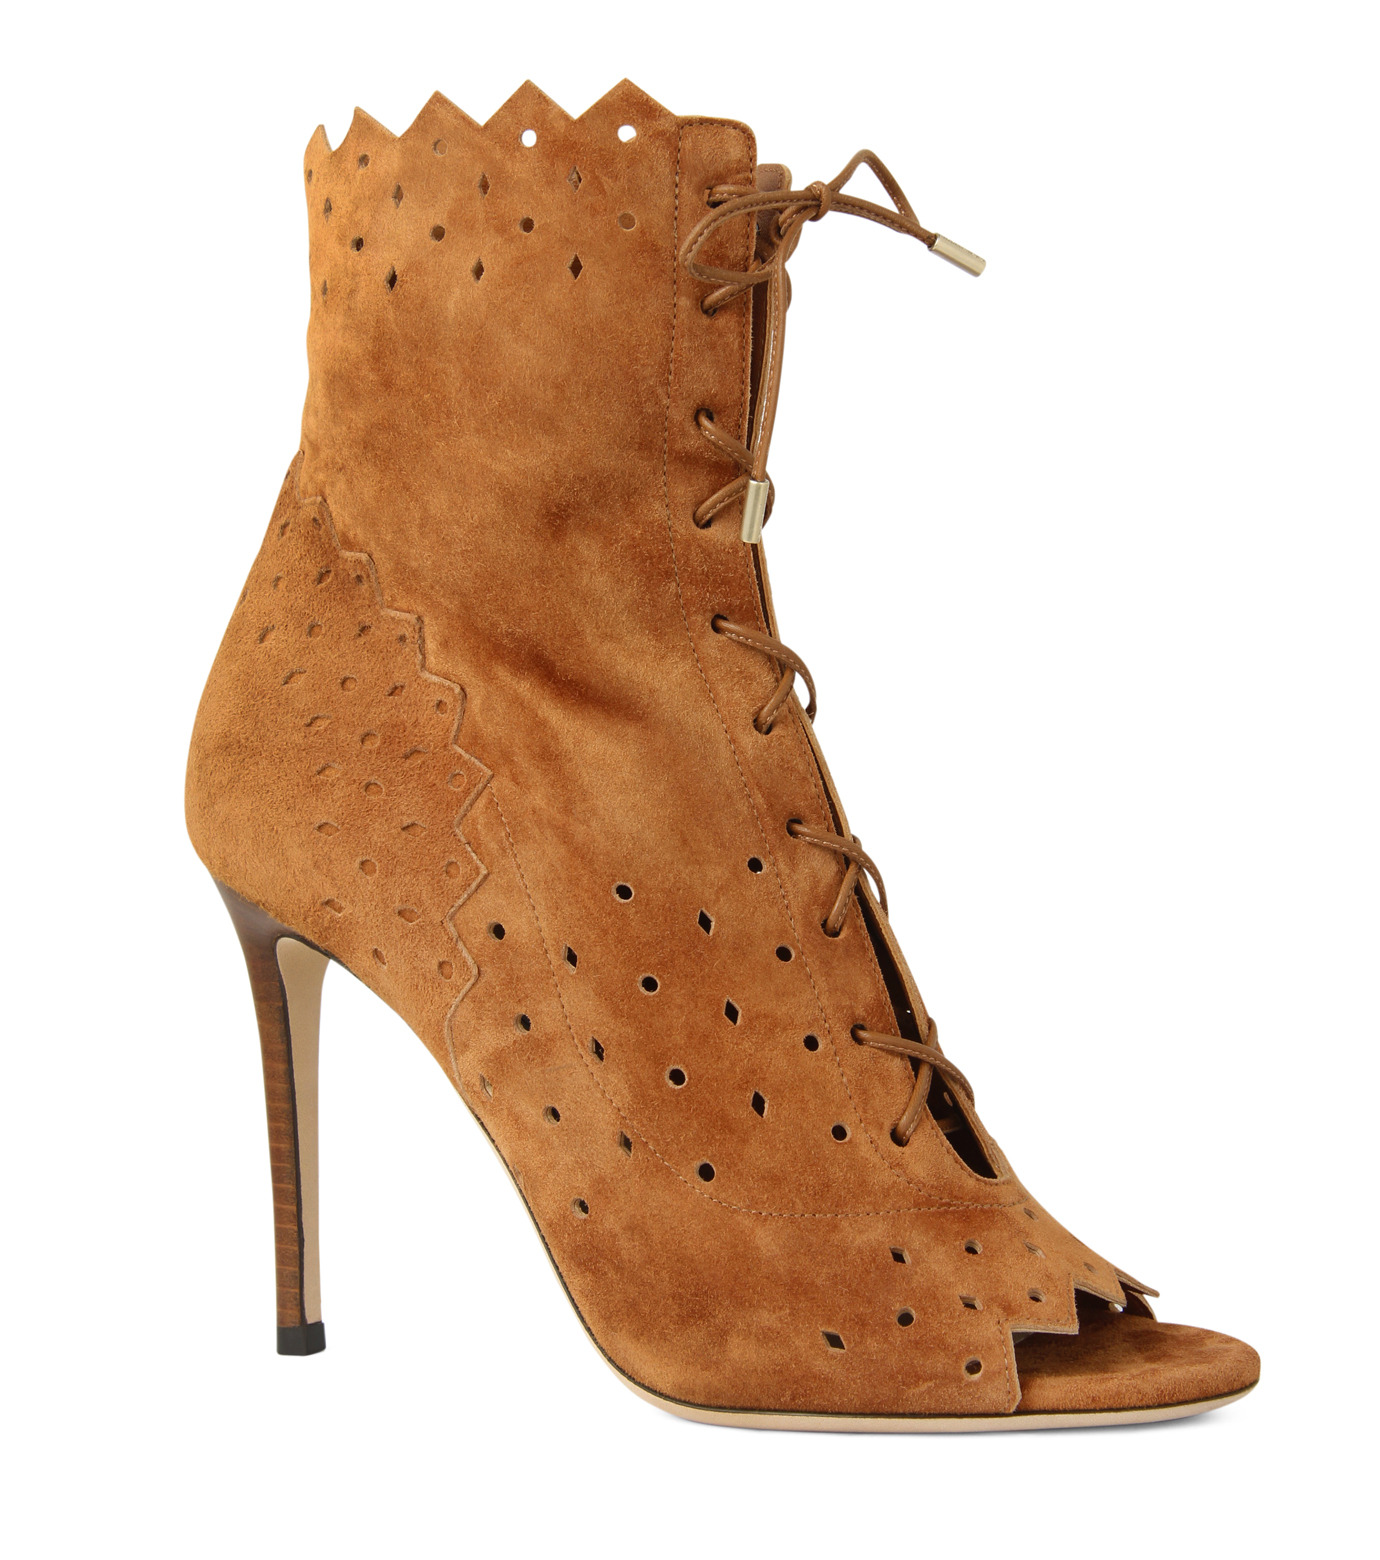 Jimmy Choo(ジミーチュウ)の161Cashmere Suede Laceup Boots-CAMEL(ブーツ/boots)-DEI-100-HSC-53 拡大詳細画像1